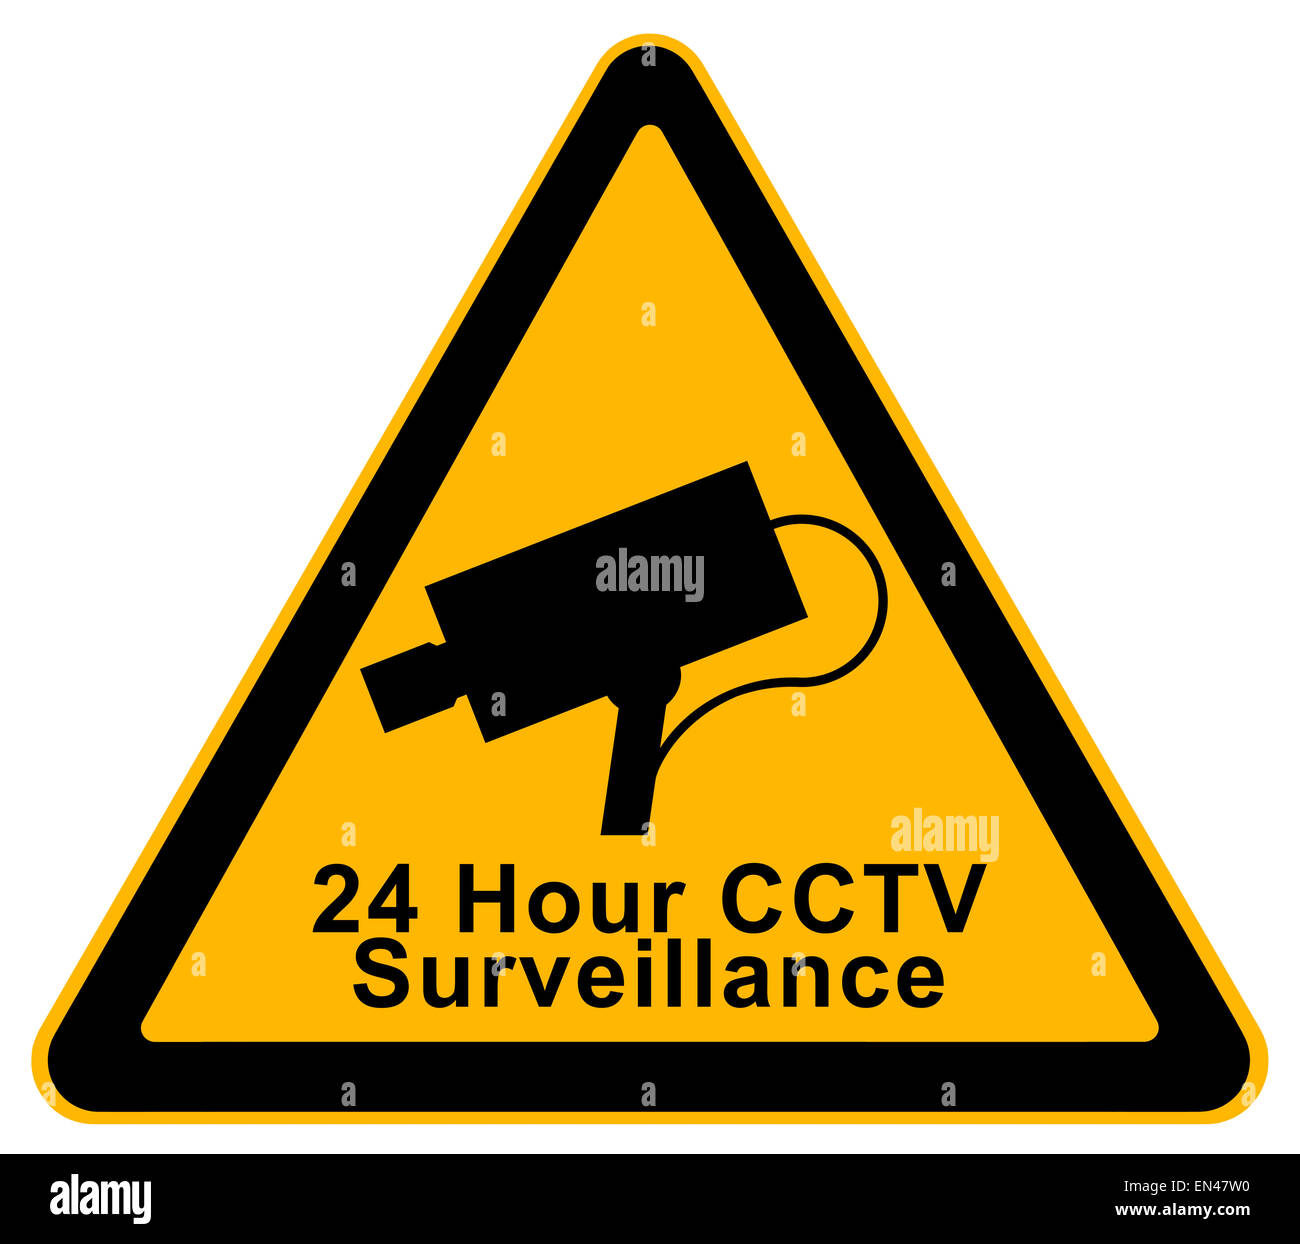 Yellow Triangle 24 Hour Surveillance Warning Sign Isolated on White Background. - Stock Image